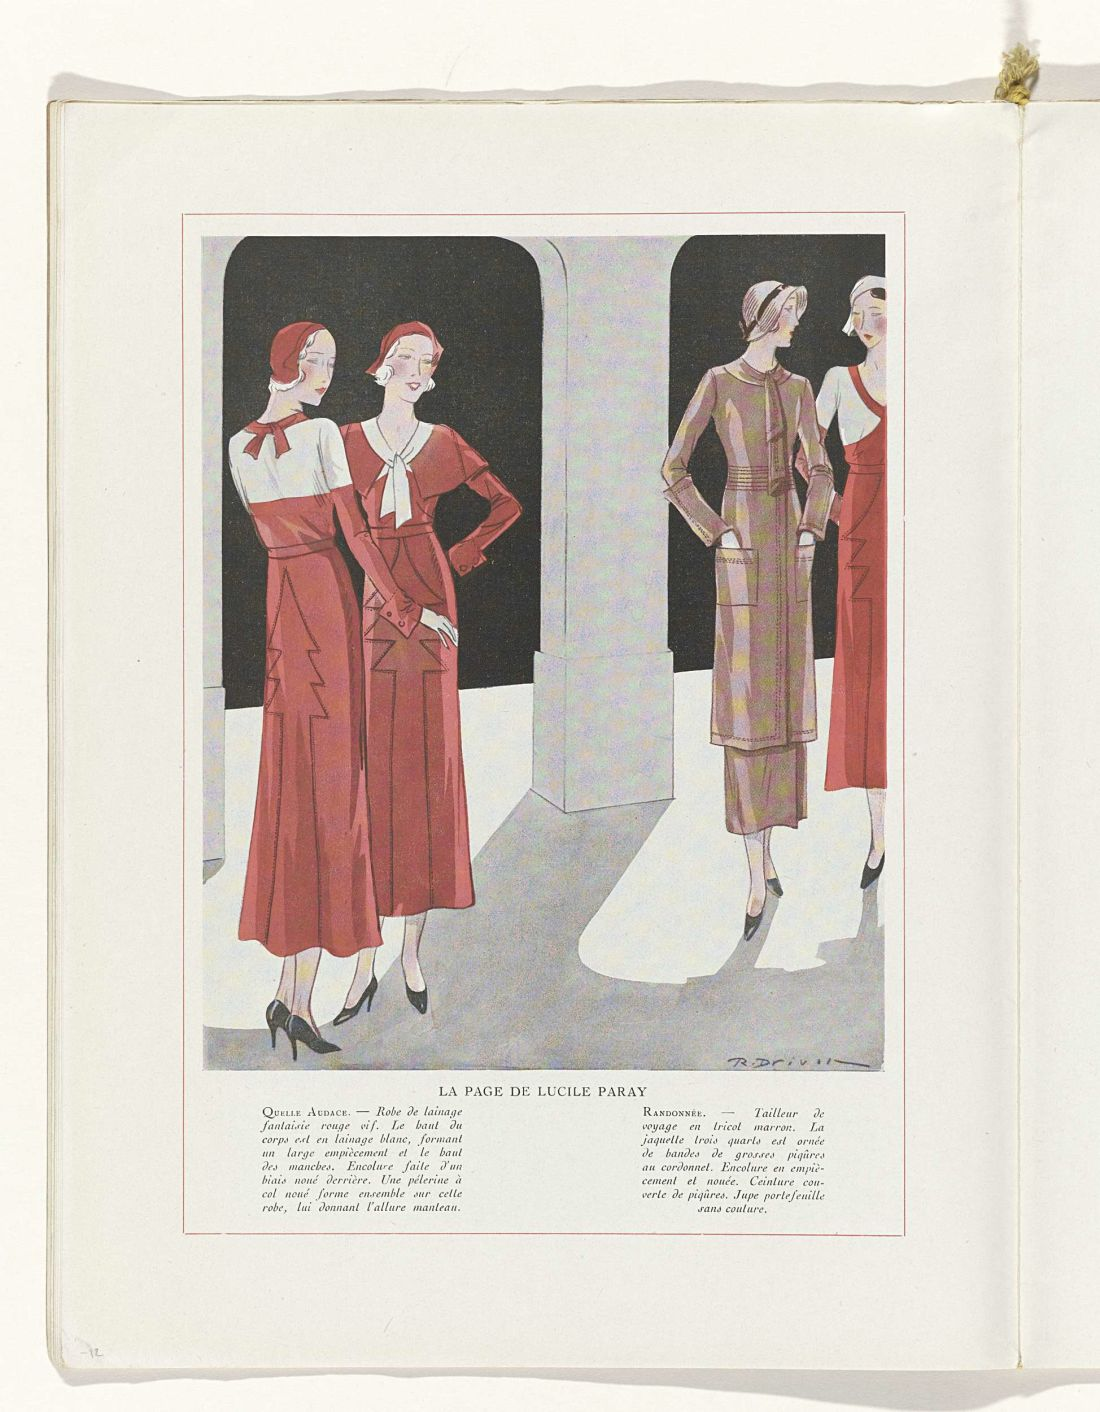 a page from a fashion magazine with a stylised drawing of women in red dresses and heels, one woman in a brown suit dress.